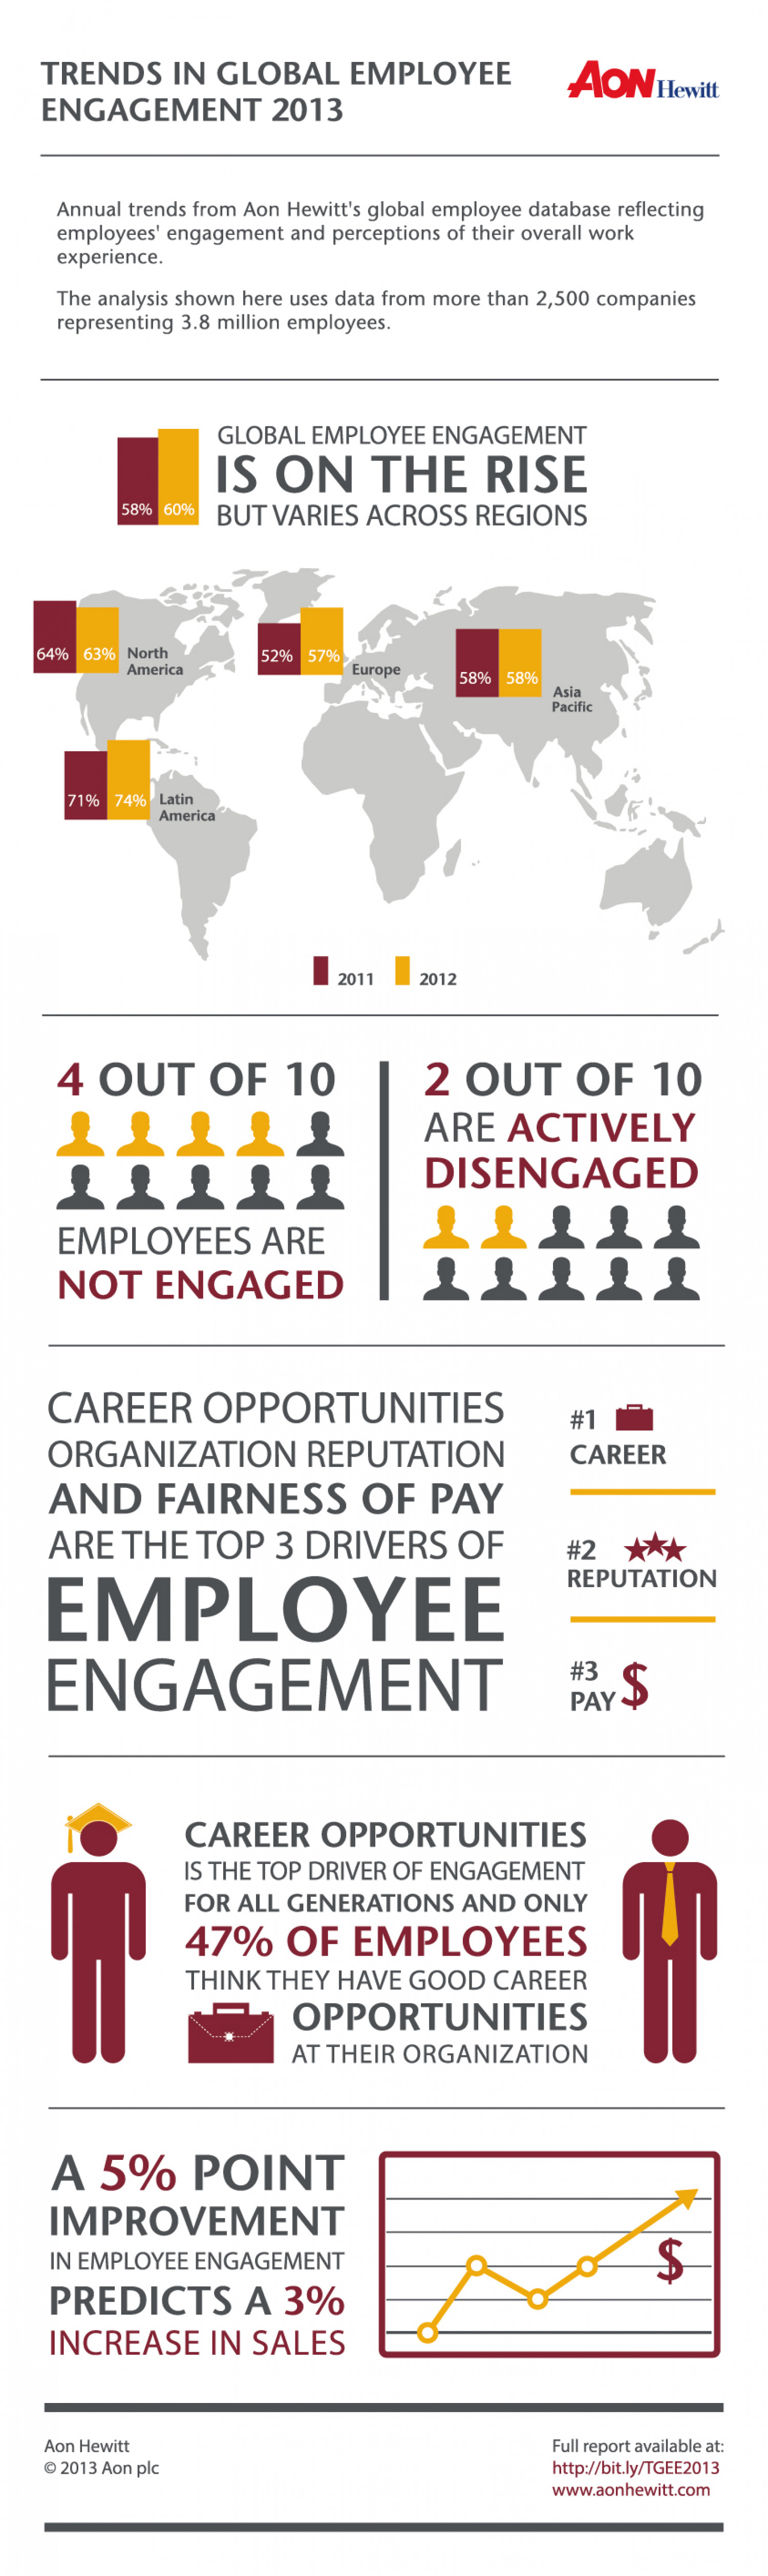 Trends In Global Employee Engagement 2013 Infographic